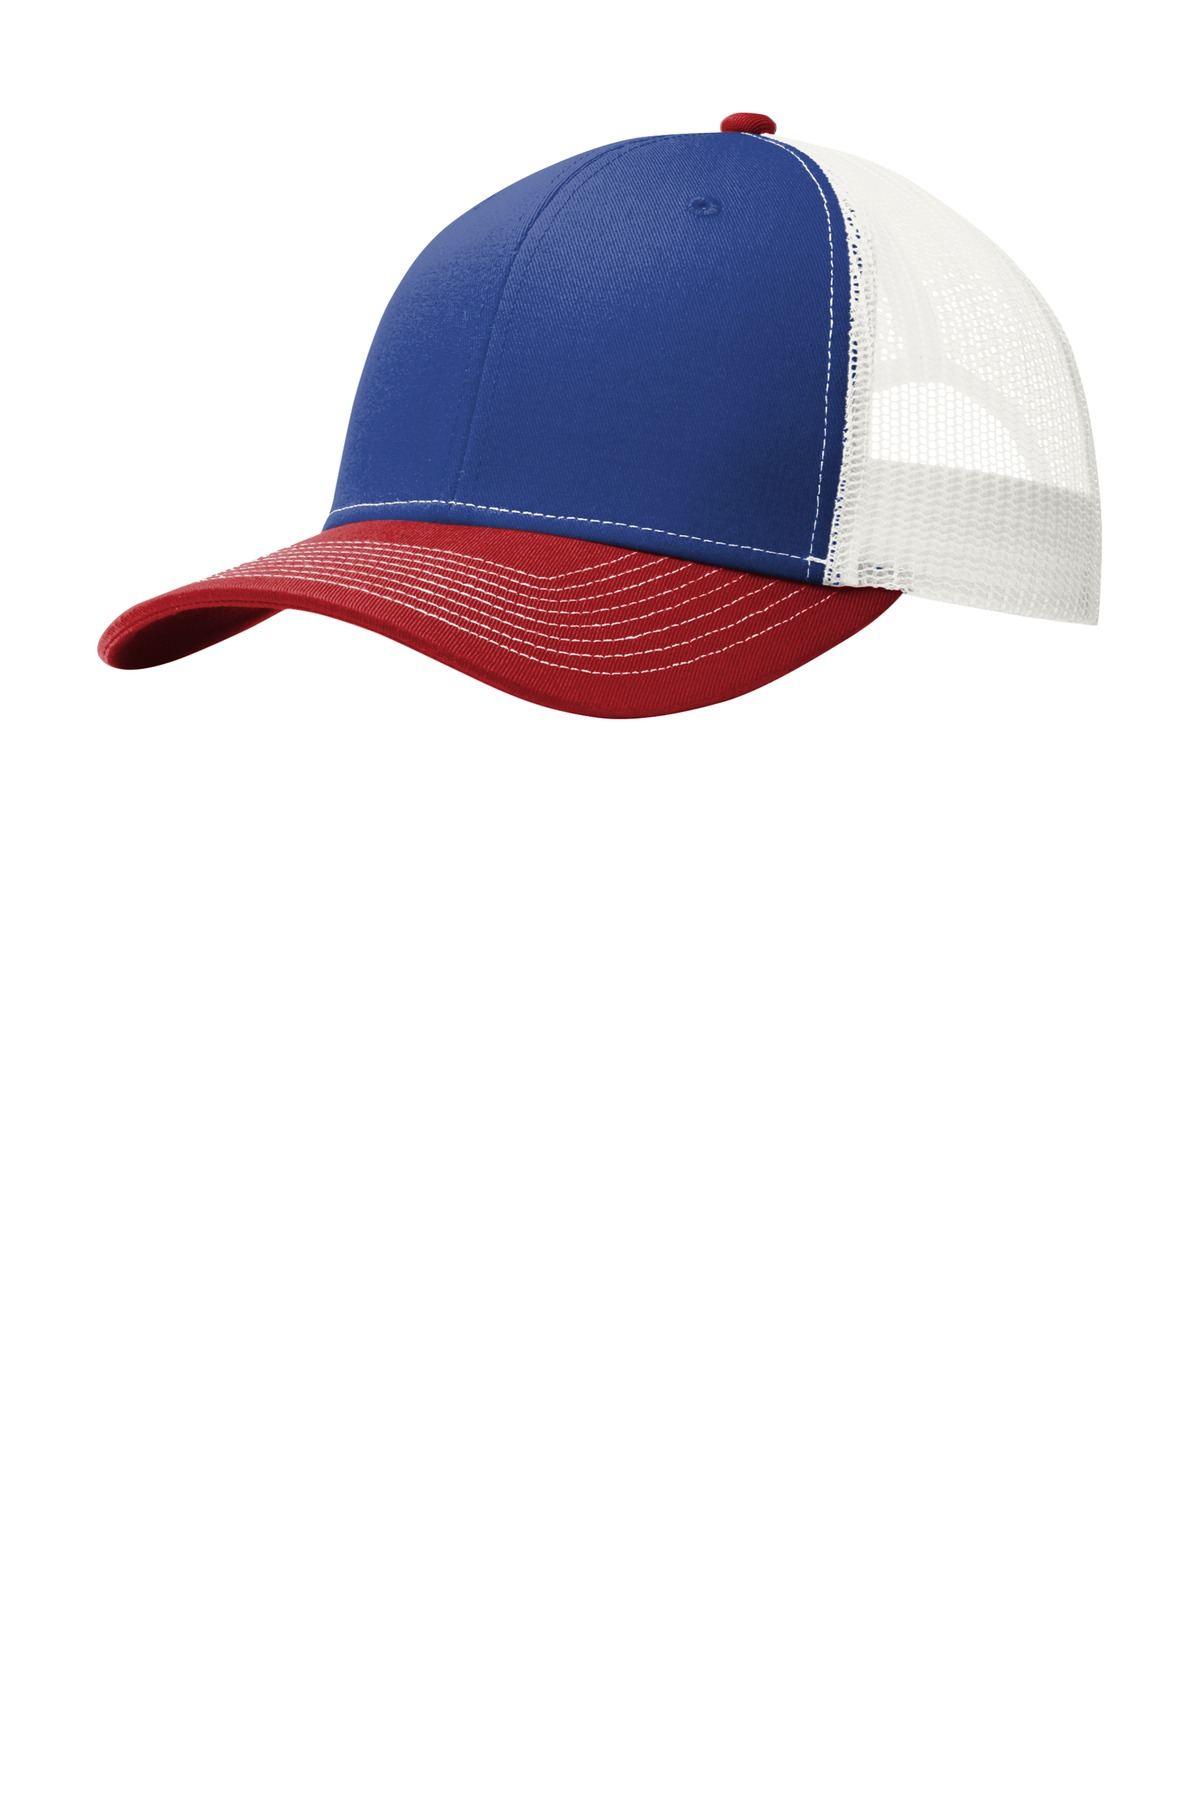 Port Authority ®  Snapback Trucker Cap. C112 - Patriot Blue/ Flame Red/ White